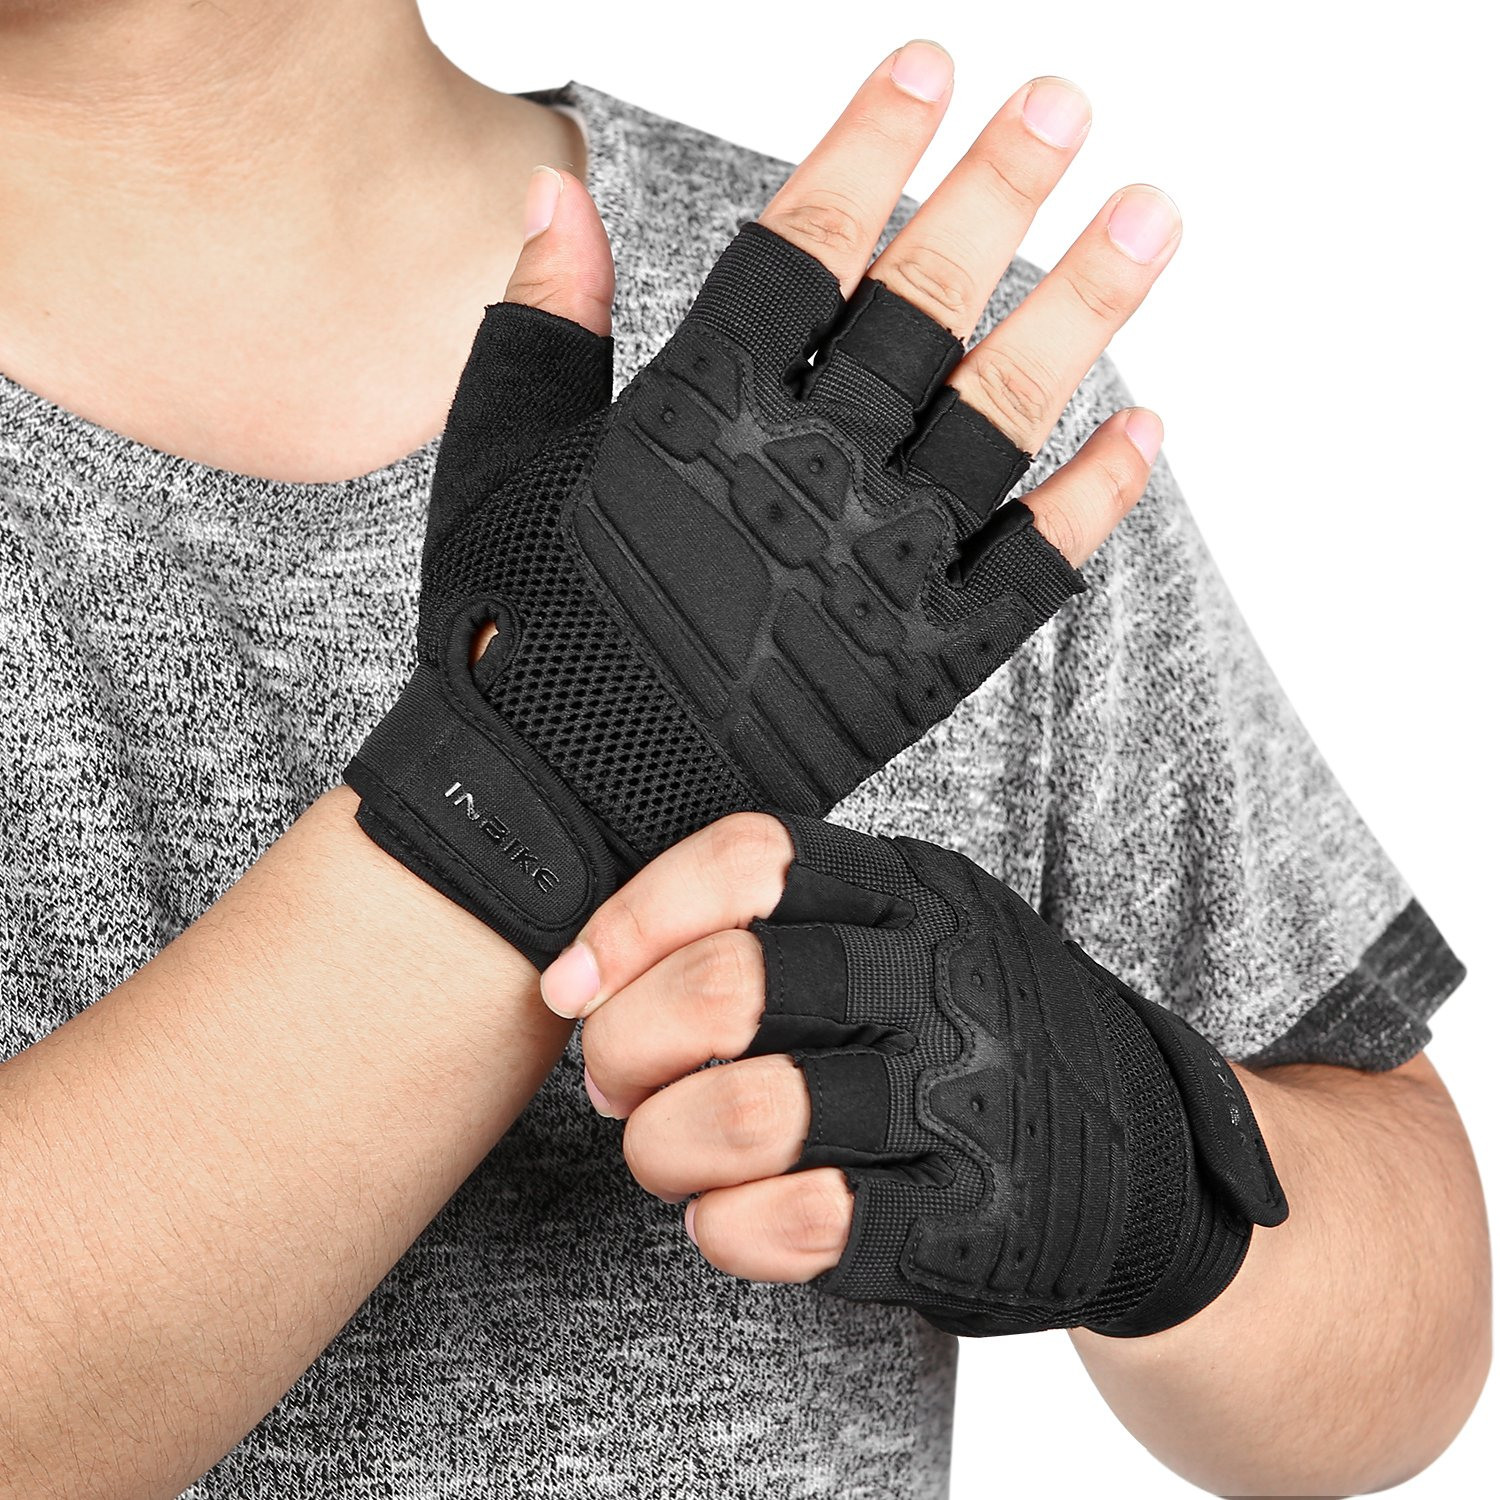 Half Finger Palm Pad Tactical Gloves Cycling Gloves Fit for Climbing//Hiking//Camping//Laser Tag//Motorcycle Men Women INBIKE Workout Gloves